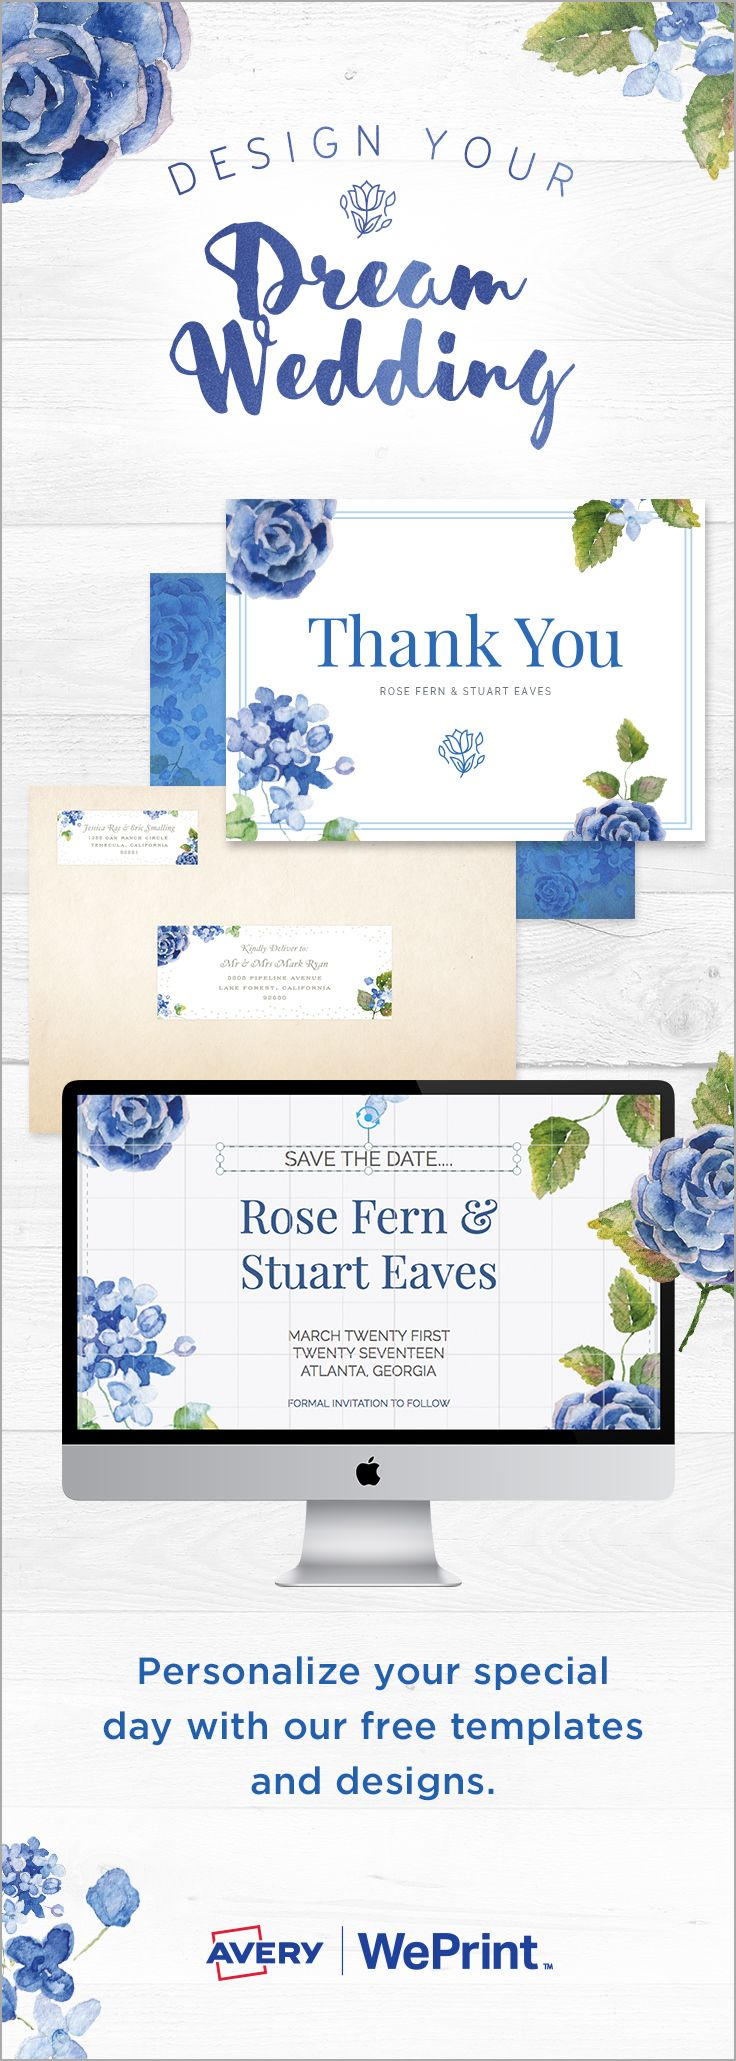 Get 20% off your order with code WED17. Expires 3/15/17. Design your dream wedding with Avery WePrint™.